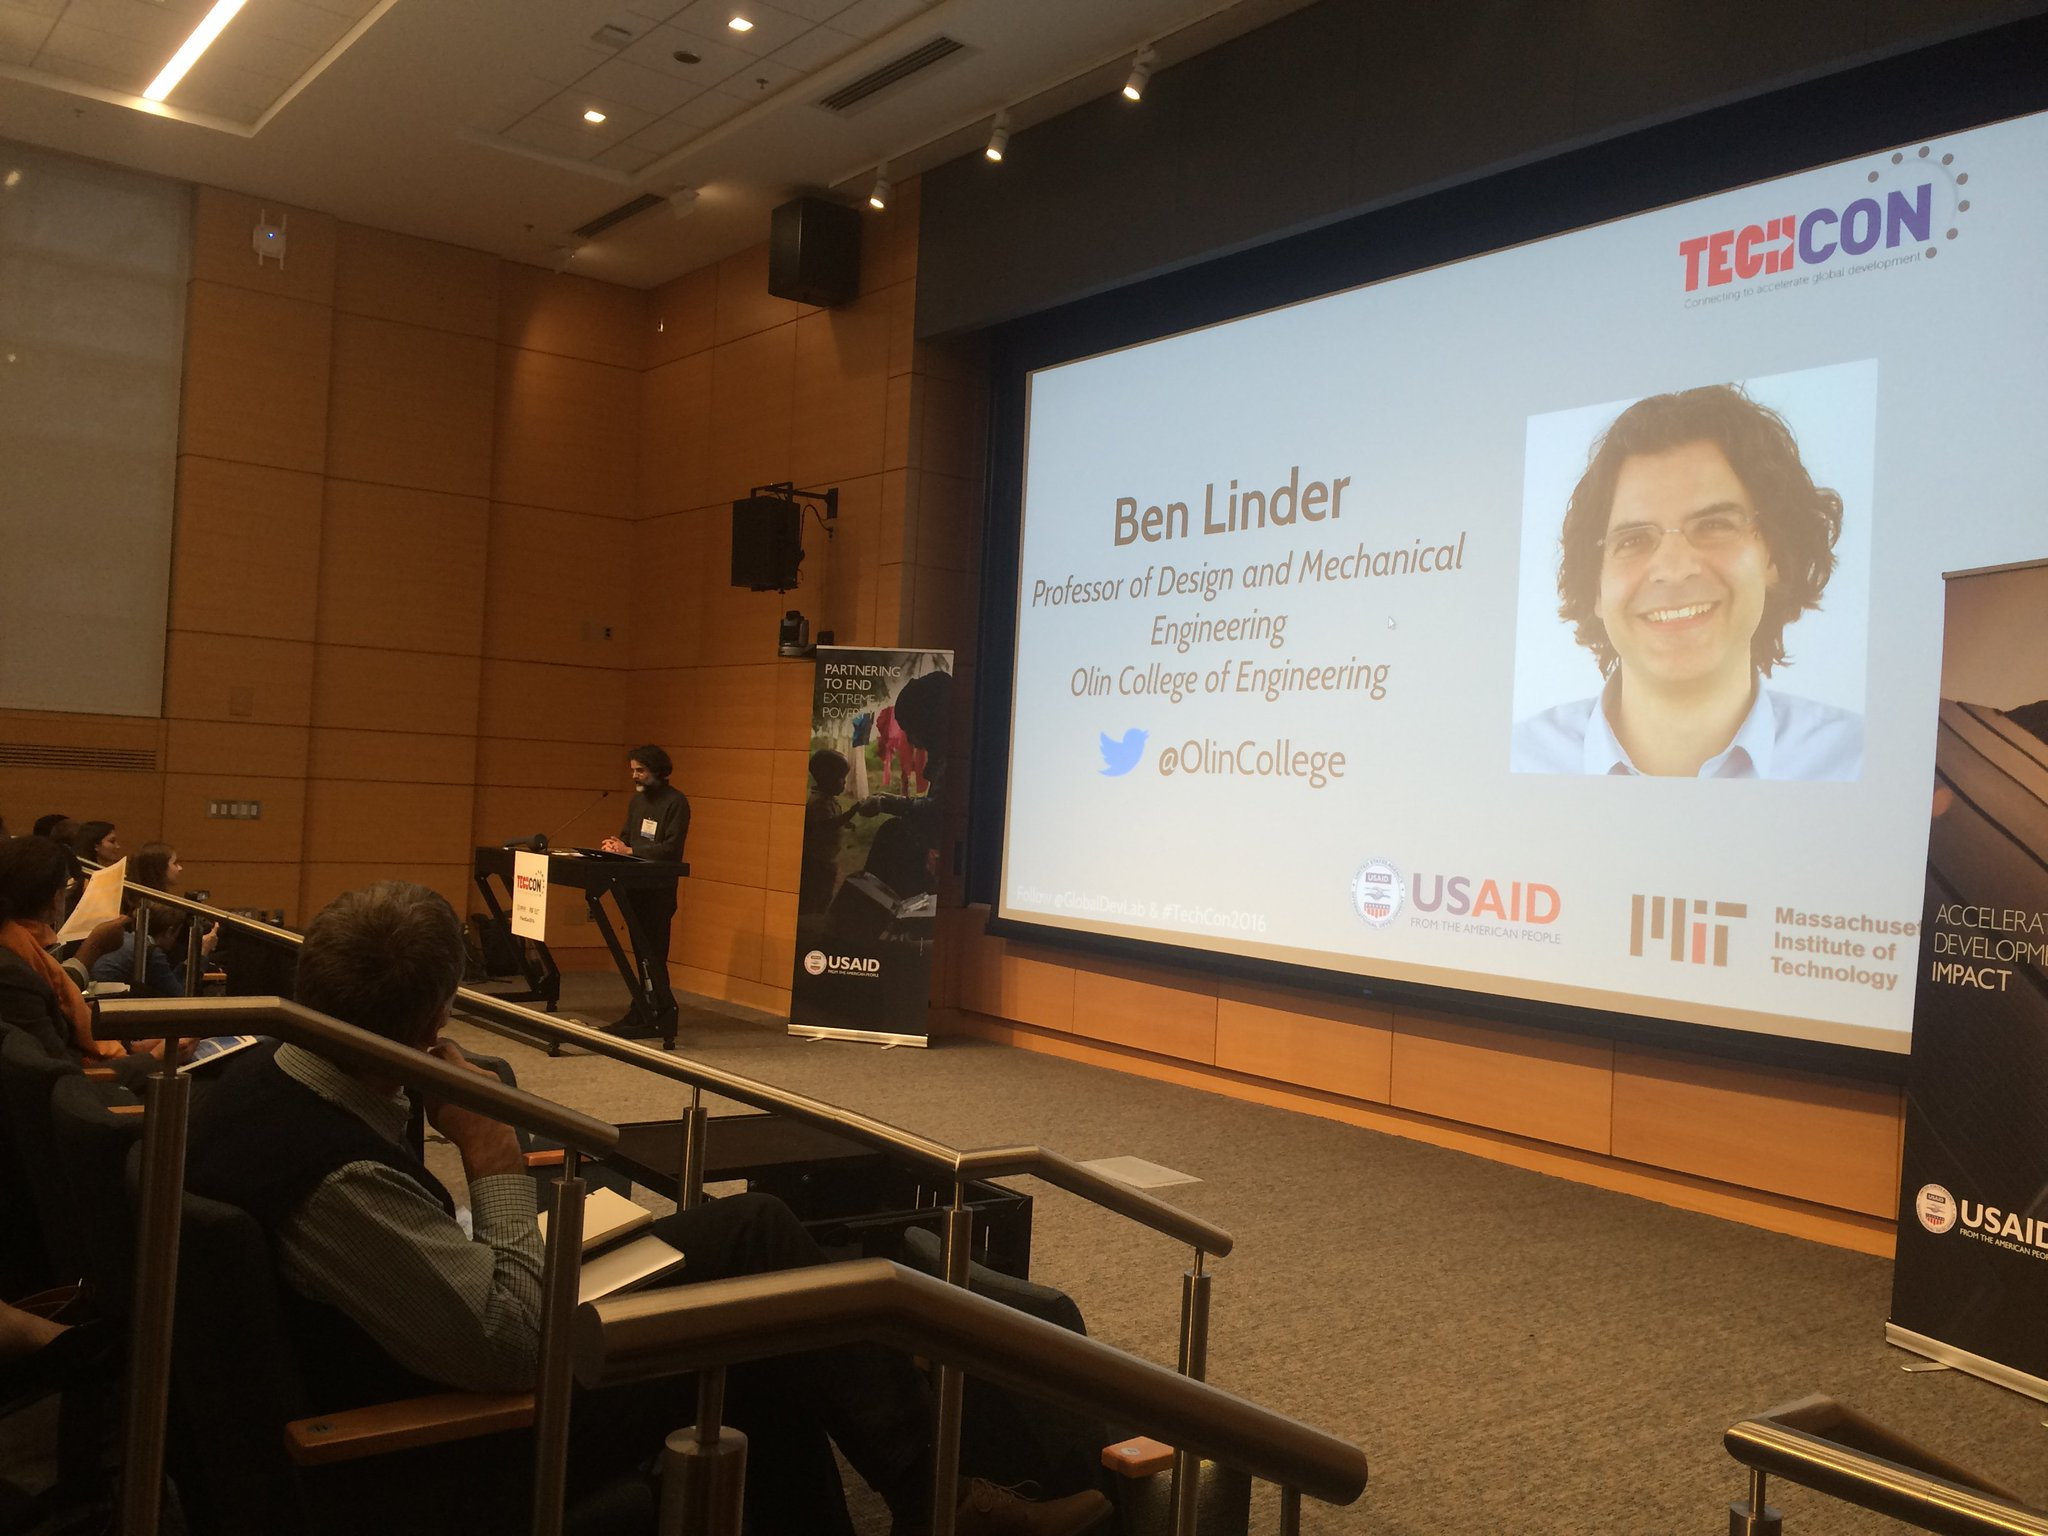 """""""Came from 11 different countries. Some for the first time. It was hard to get here."""" -@BenjaminLinder @OlinCollege #TechCon2016 #compassion https://t.co/AP3nEZSs94"""